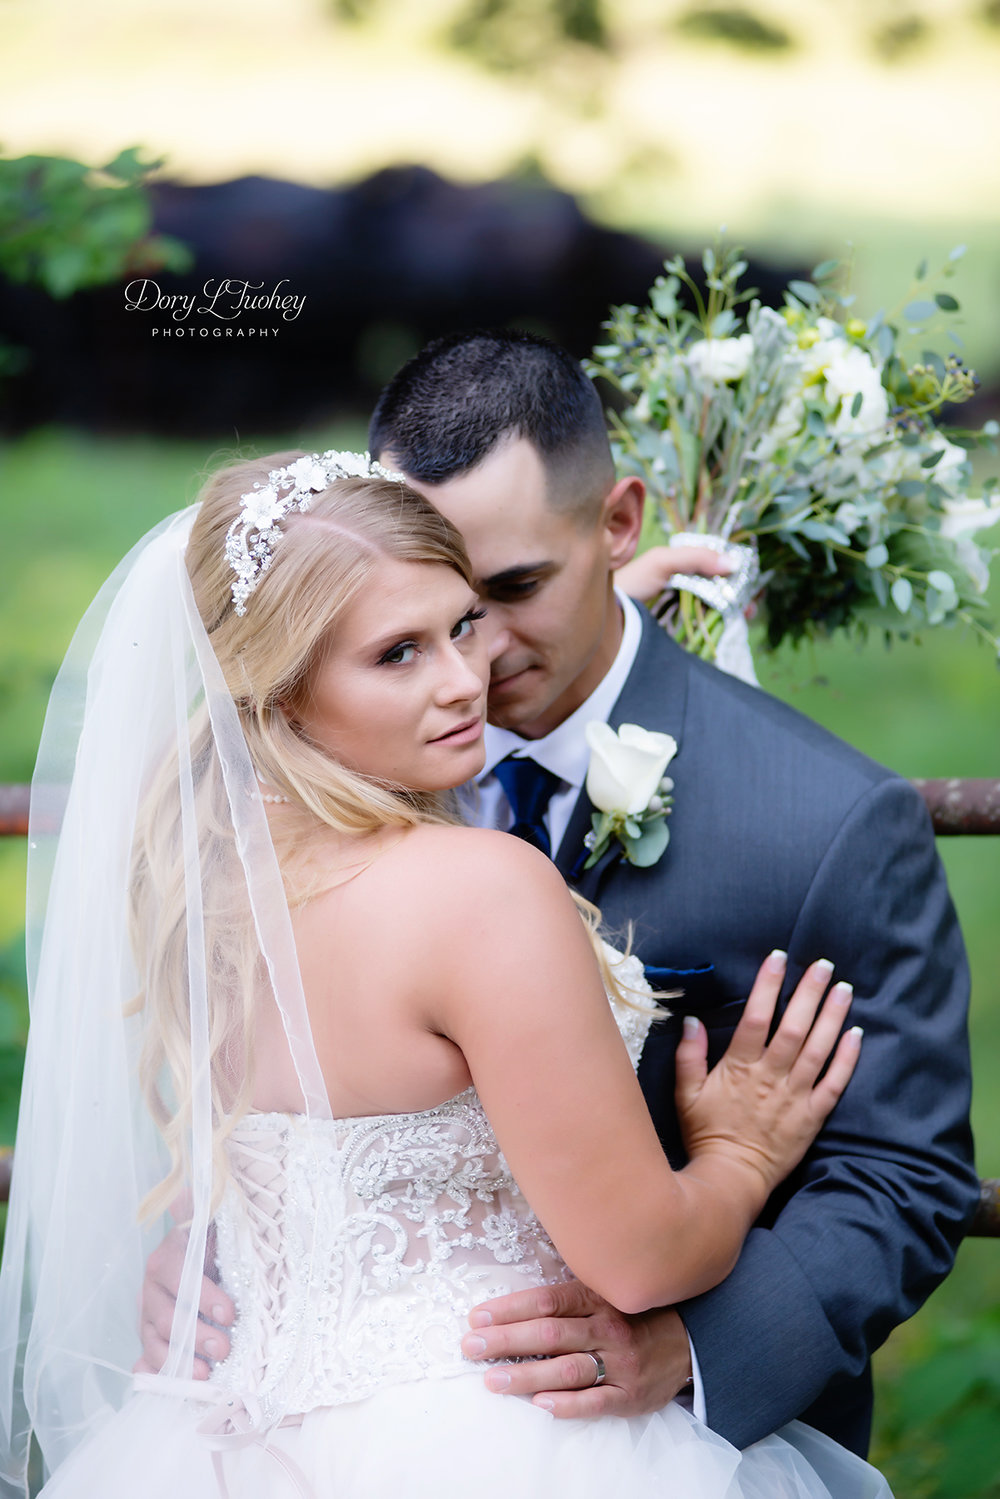 Dory_wedding_farm_country_equestrian_horses_bride_groom_apple_valley_06.jpg